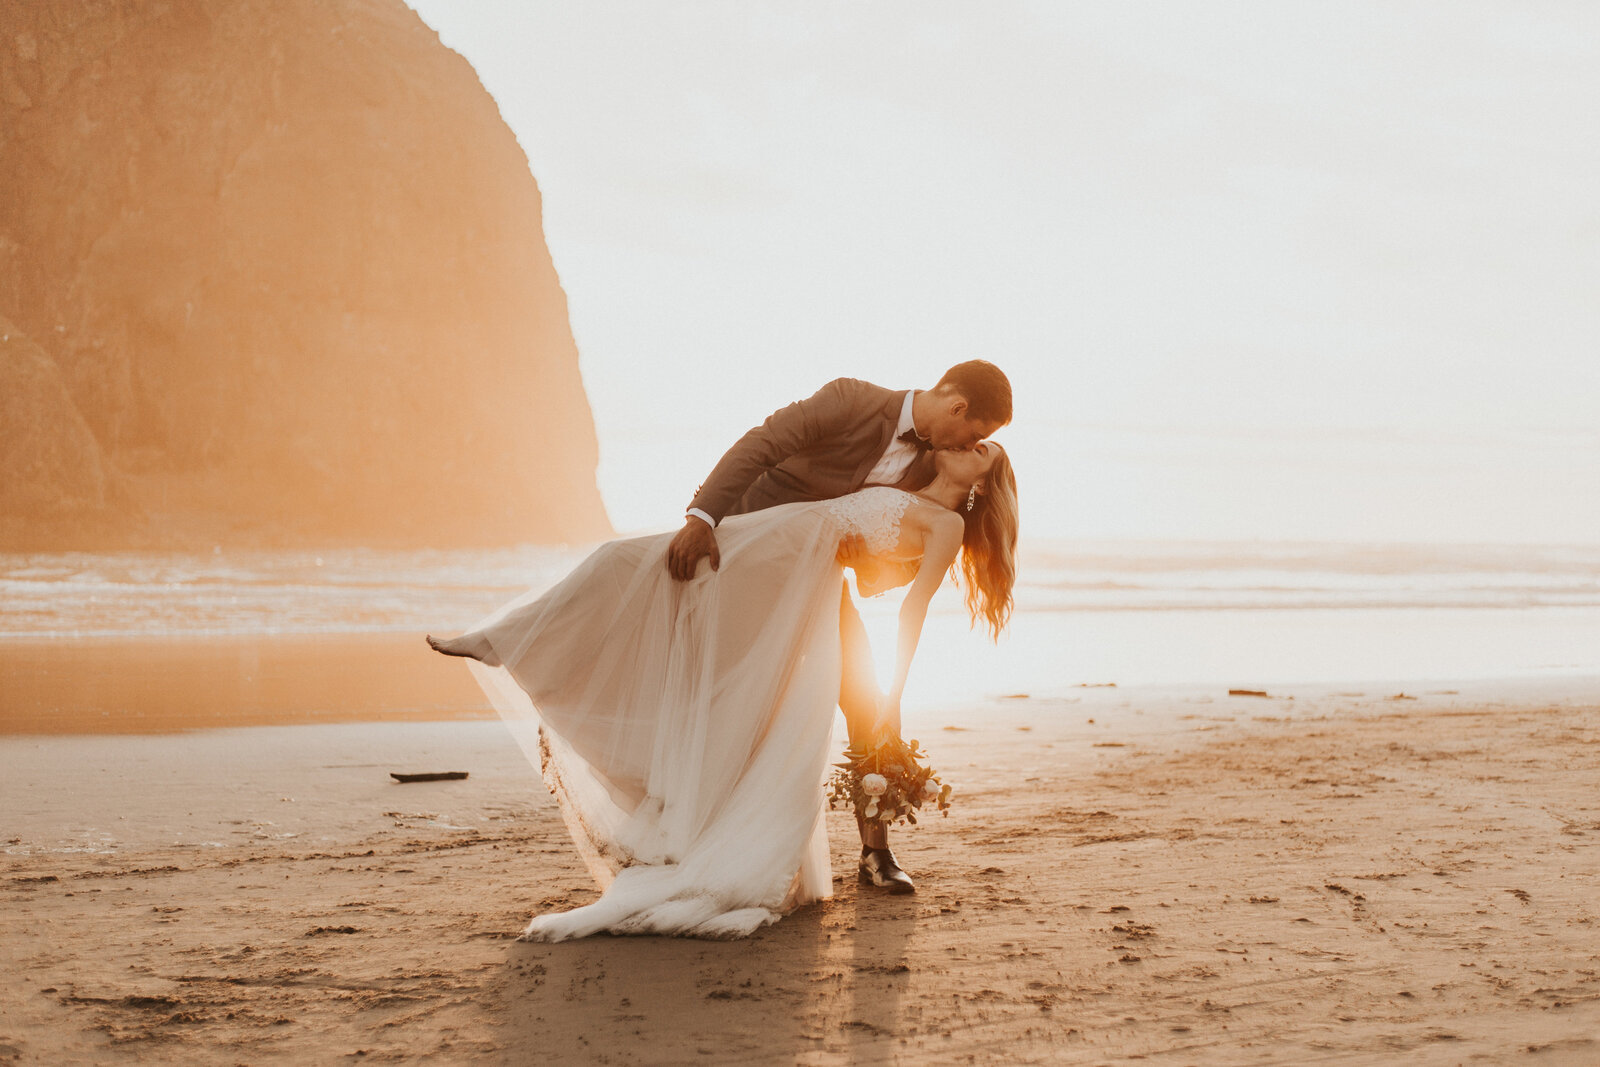 Cannon Beach Elopement-Oregon Coast Engagement-Oregon Elopement Photographer-Cannon Beach Engagement-Cannon Beach-Cannon Beach Wedding-Erika Laub Photography-102